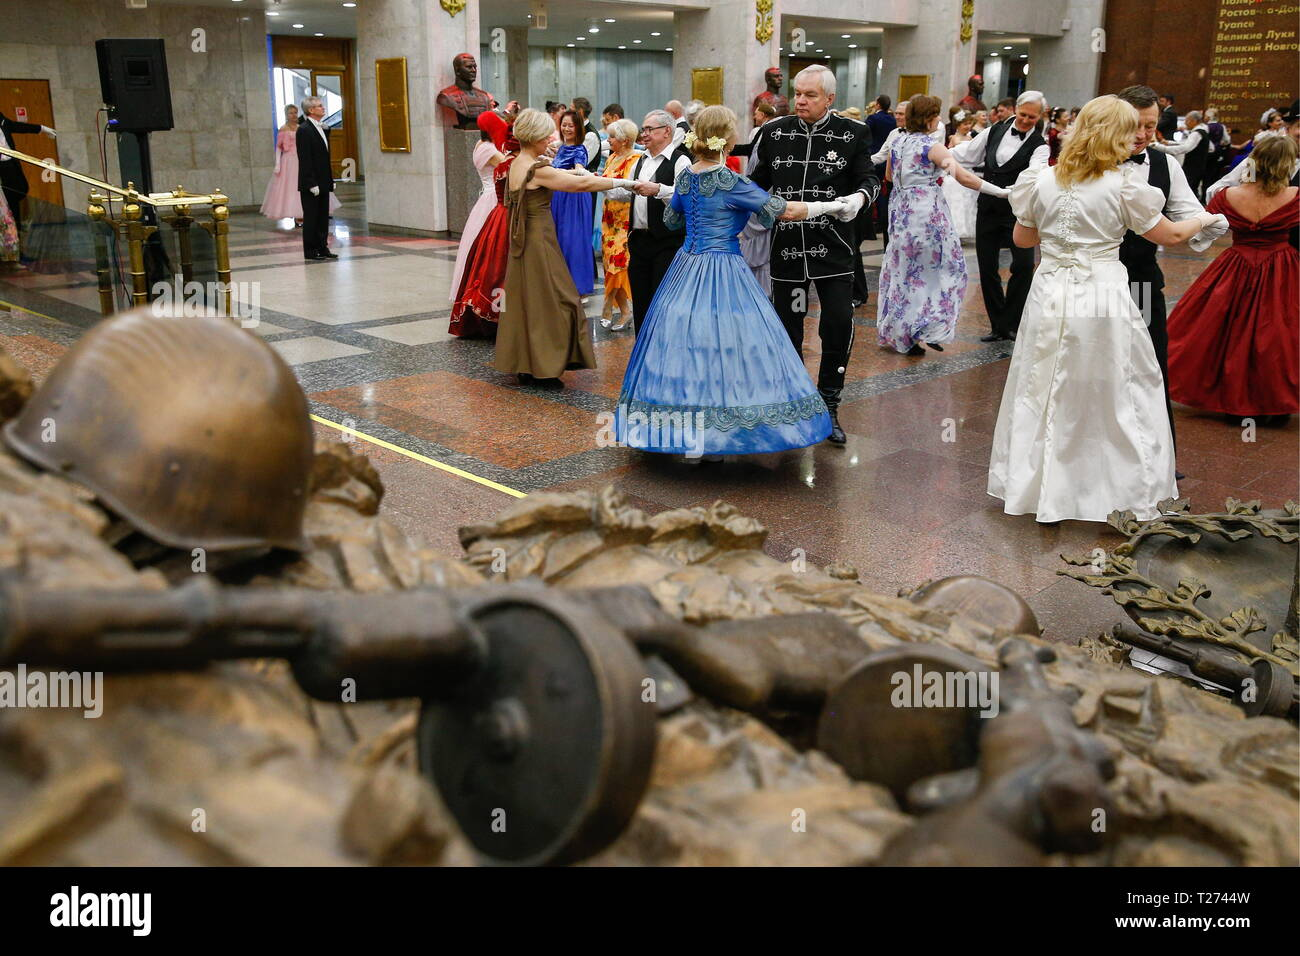 Moscow, Russia. 30th Mar, 2019. MOSCOW, RUSSIA - MARCH 30, 2019: Men in tuxedos and women in evening gowns dancing during a spring ball at the Victory Museum. Gavriil Grigorov/TASS Credit: ITAR-TASS News Agency/Alamy Live News - Stock Image